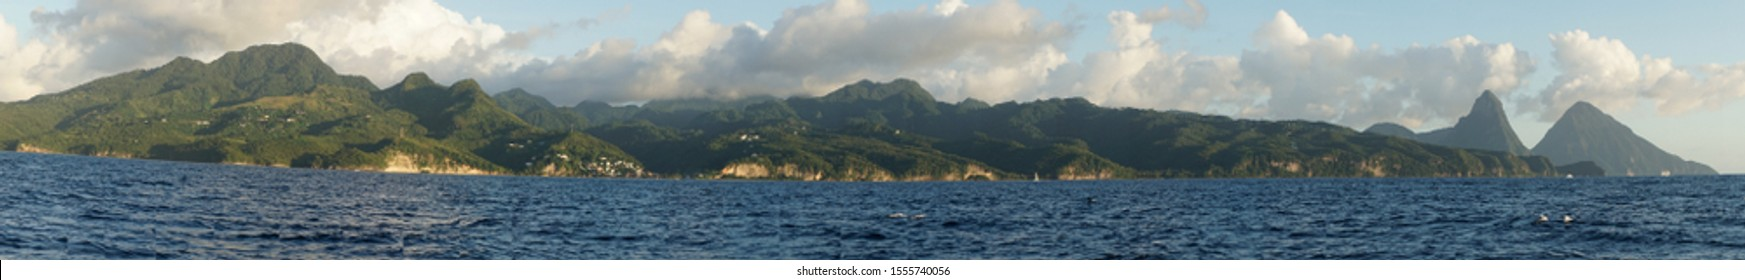 Piton Mountain Peaks rising out of the ocean on the Caribbean Island of Saint Lucia.